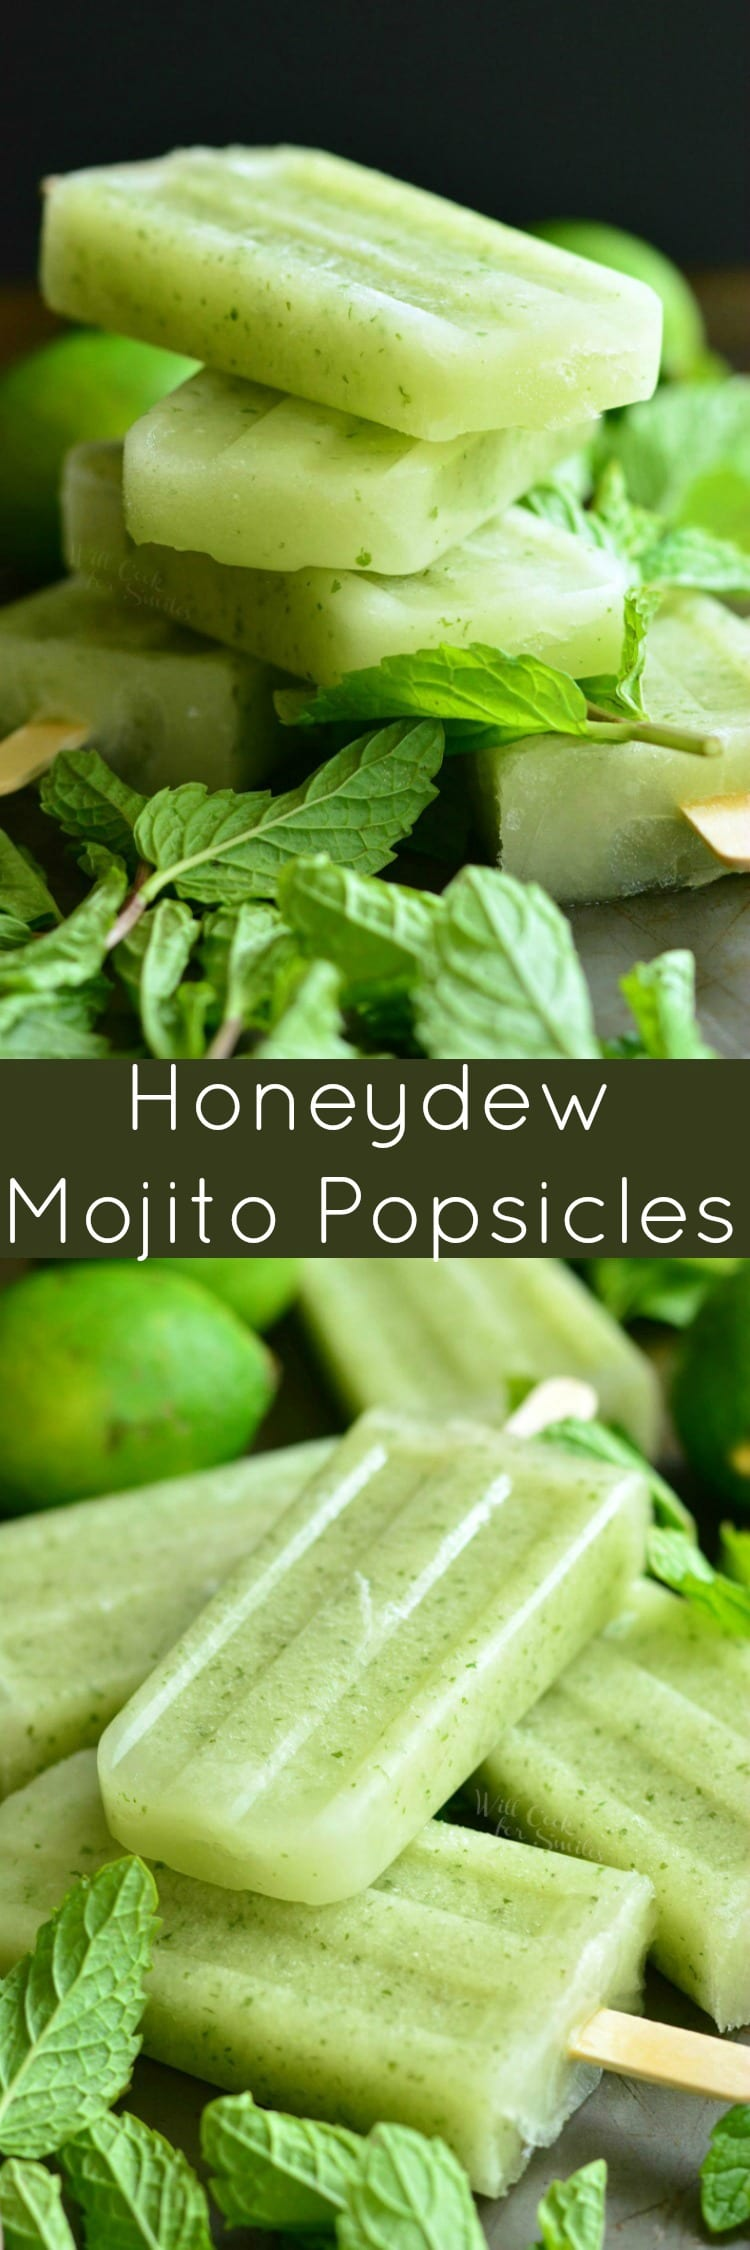 Honeydew Mojito Popsicles. These delicious and refreshing mojito popsicles are made with sweet, juicy honeydew melon, fresh lime juice, and mint. Easily turn them into boozy pops with rum!